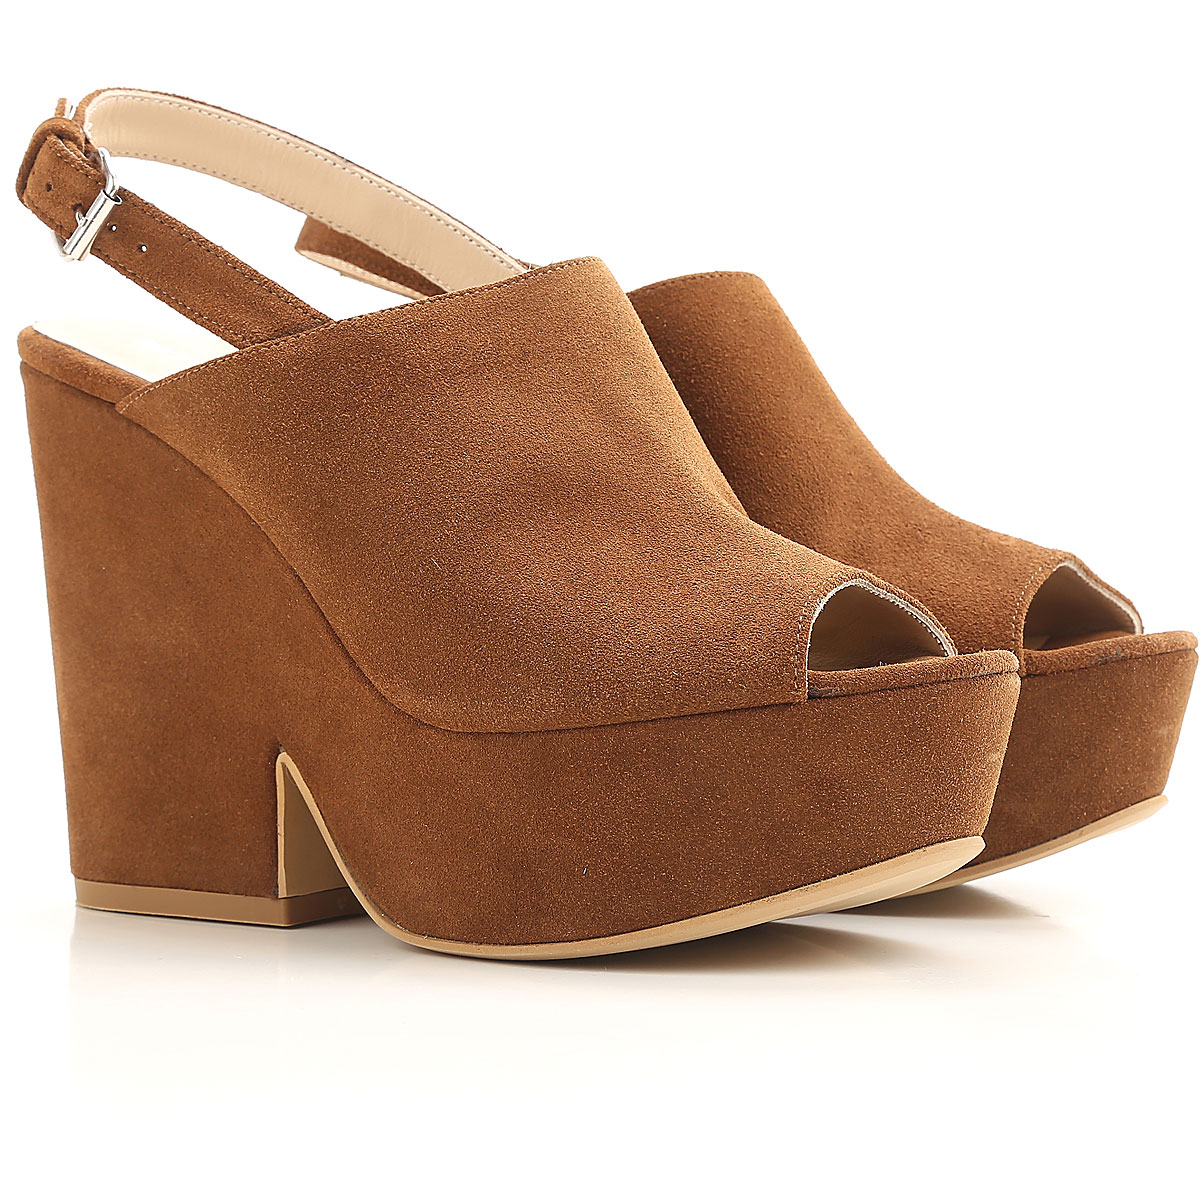 Strategia Wedges for Women On Sale in Outlet Tobacco SE - GOOFASH